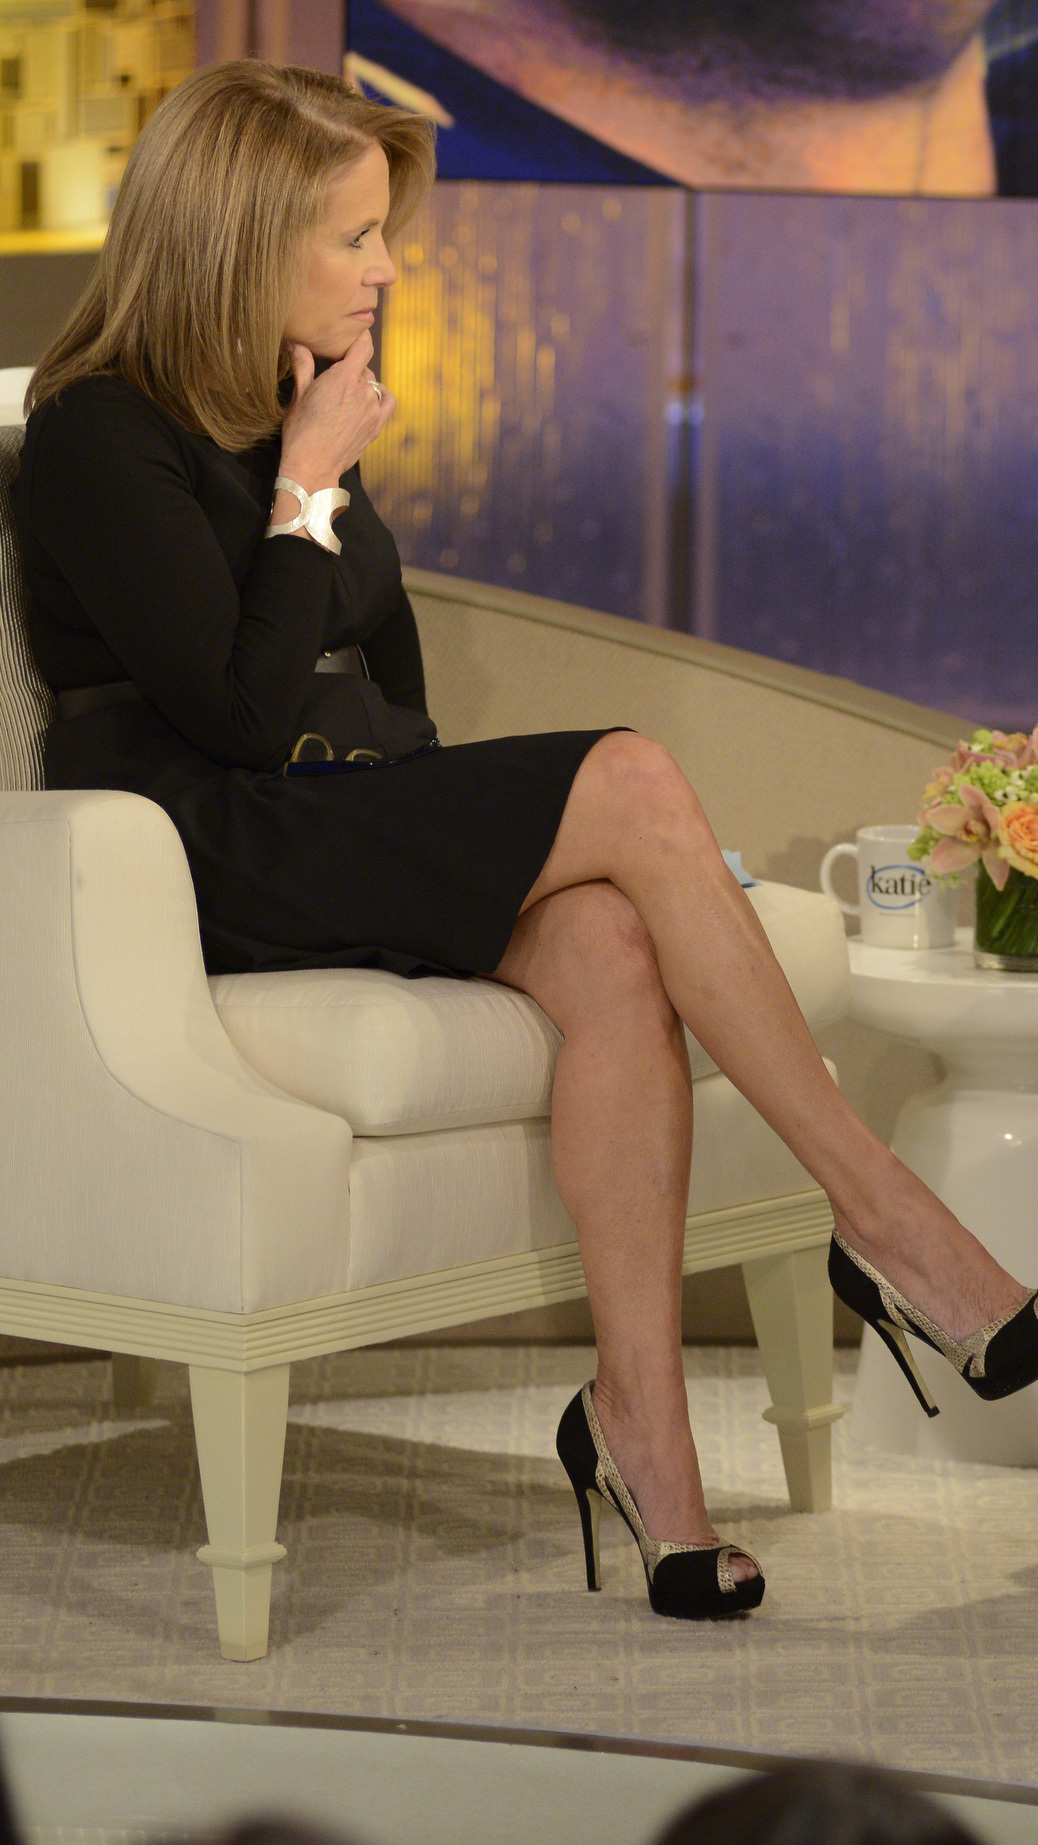 Katie couric pantyhose photo